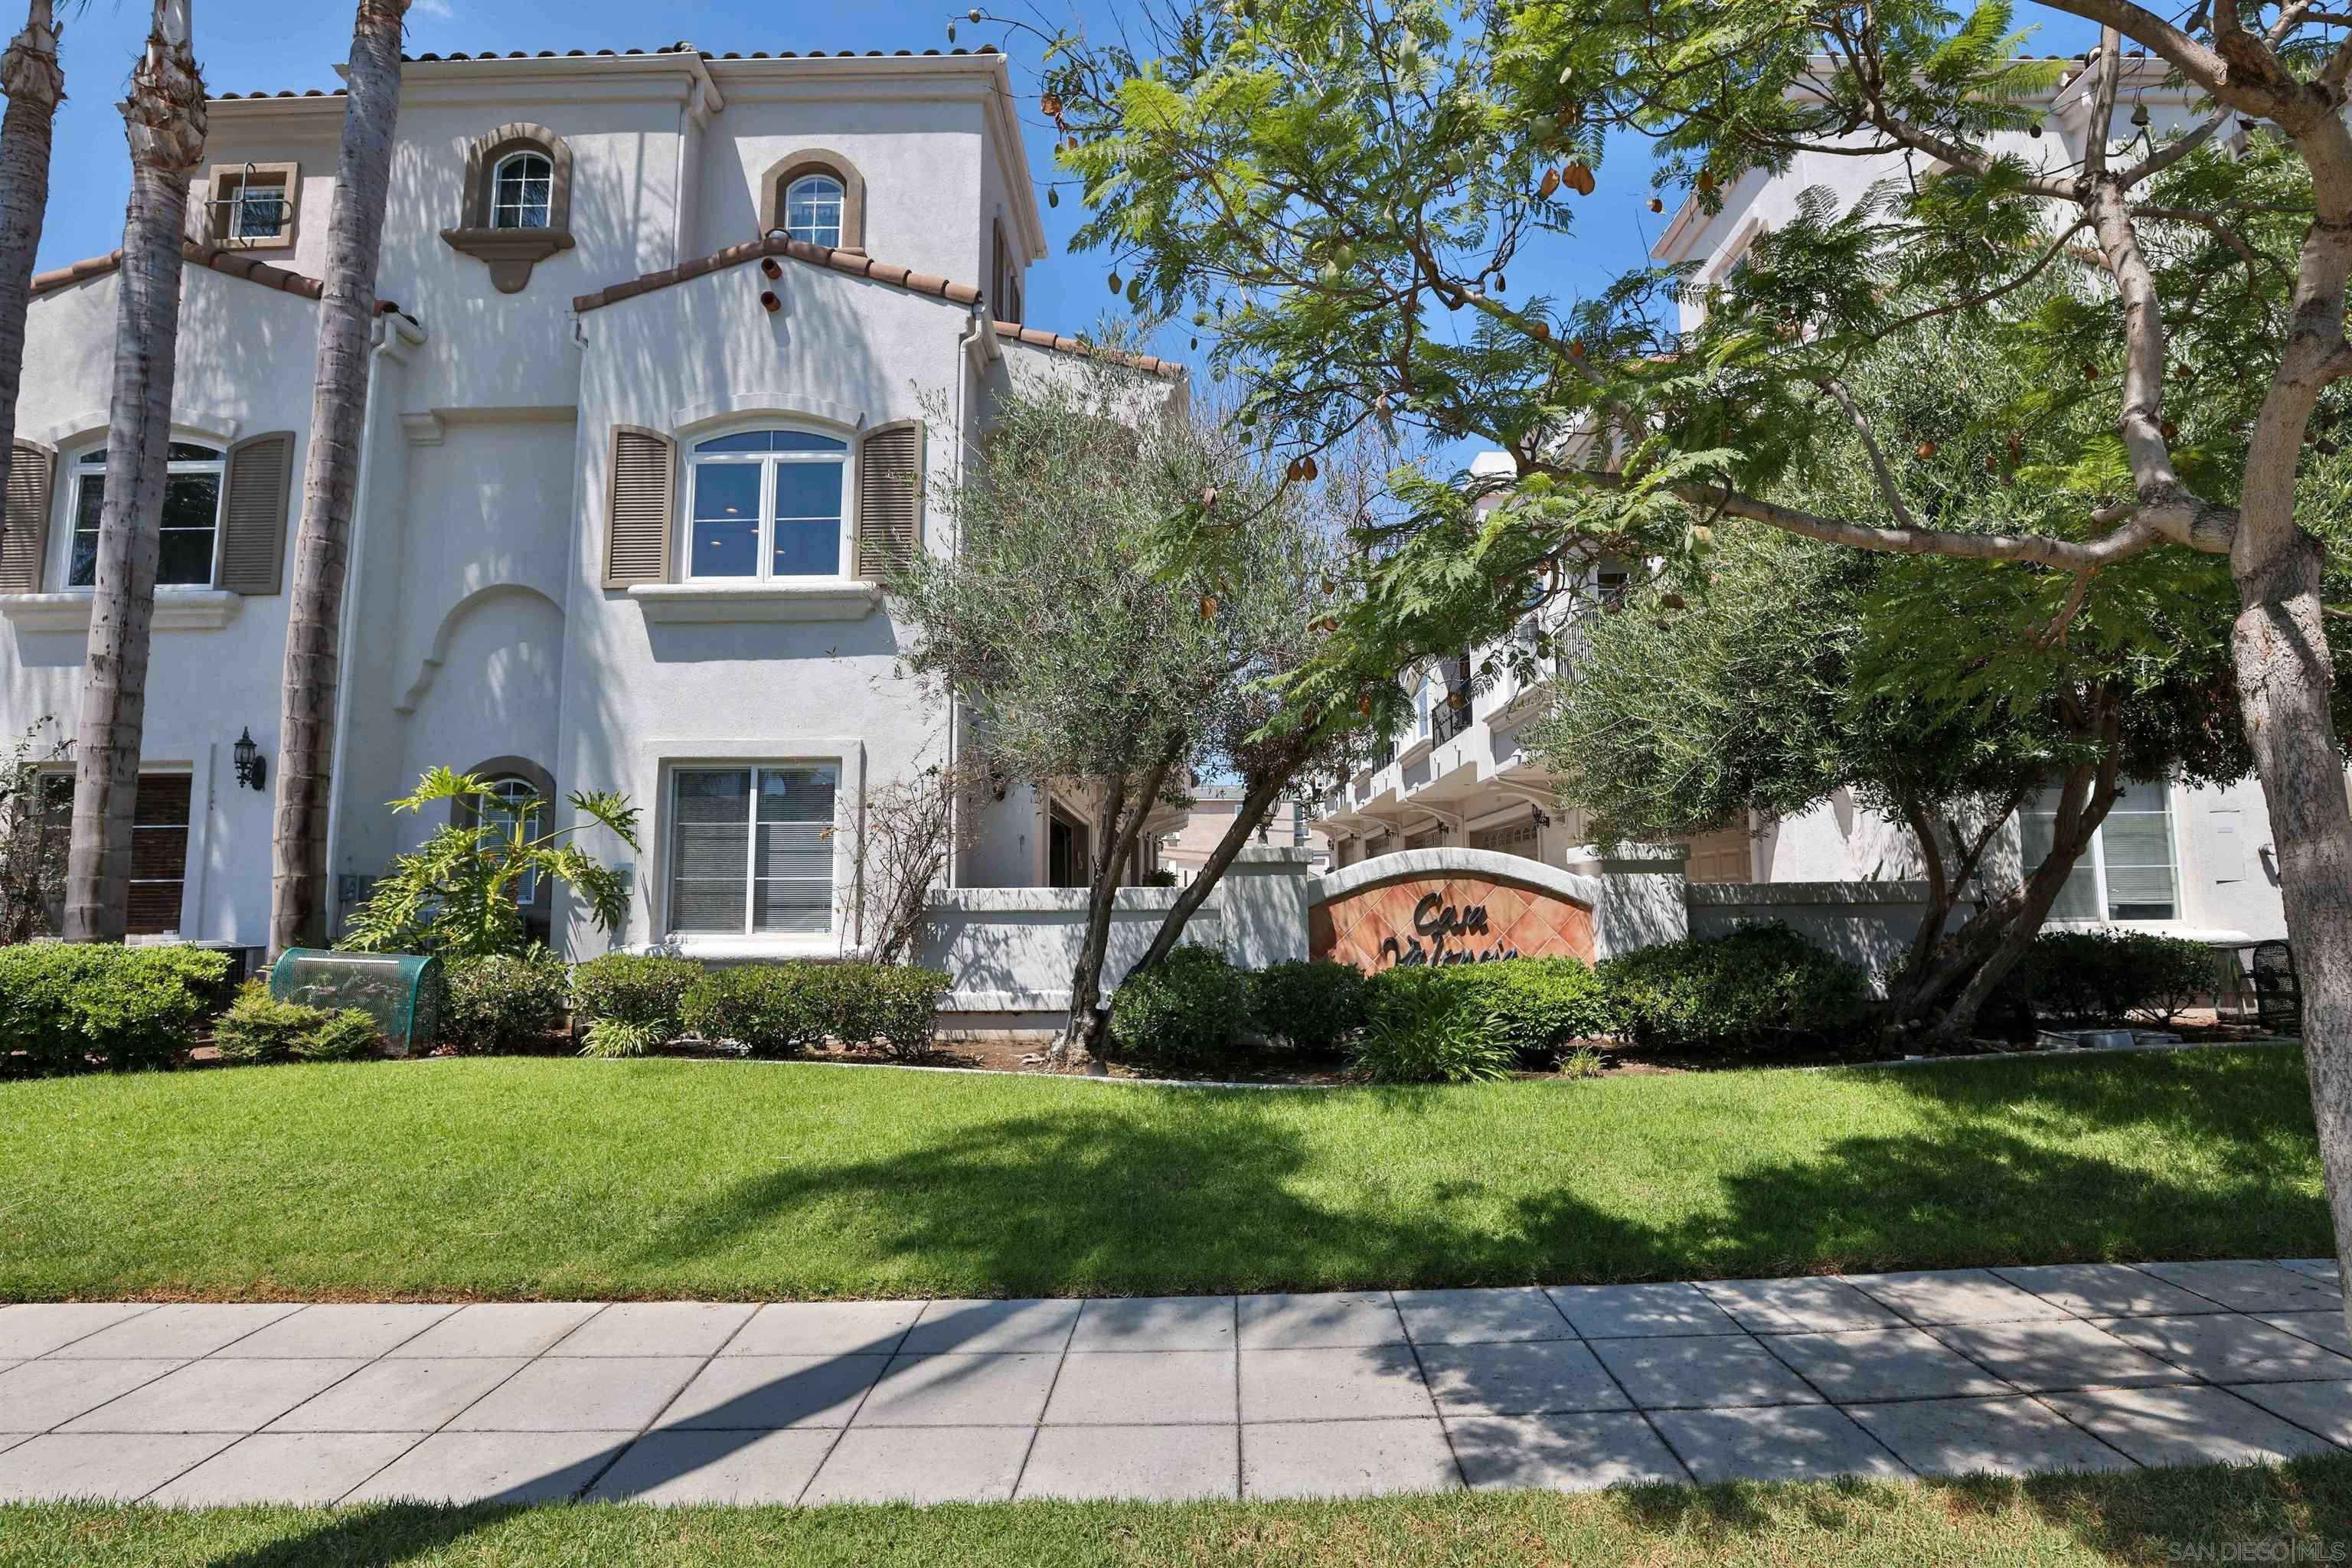 Main Photo: HILLCREST Condo for sale : 3 bedrooms : 3620 Indiana St #101 in San Diego